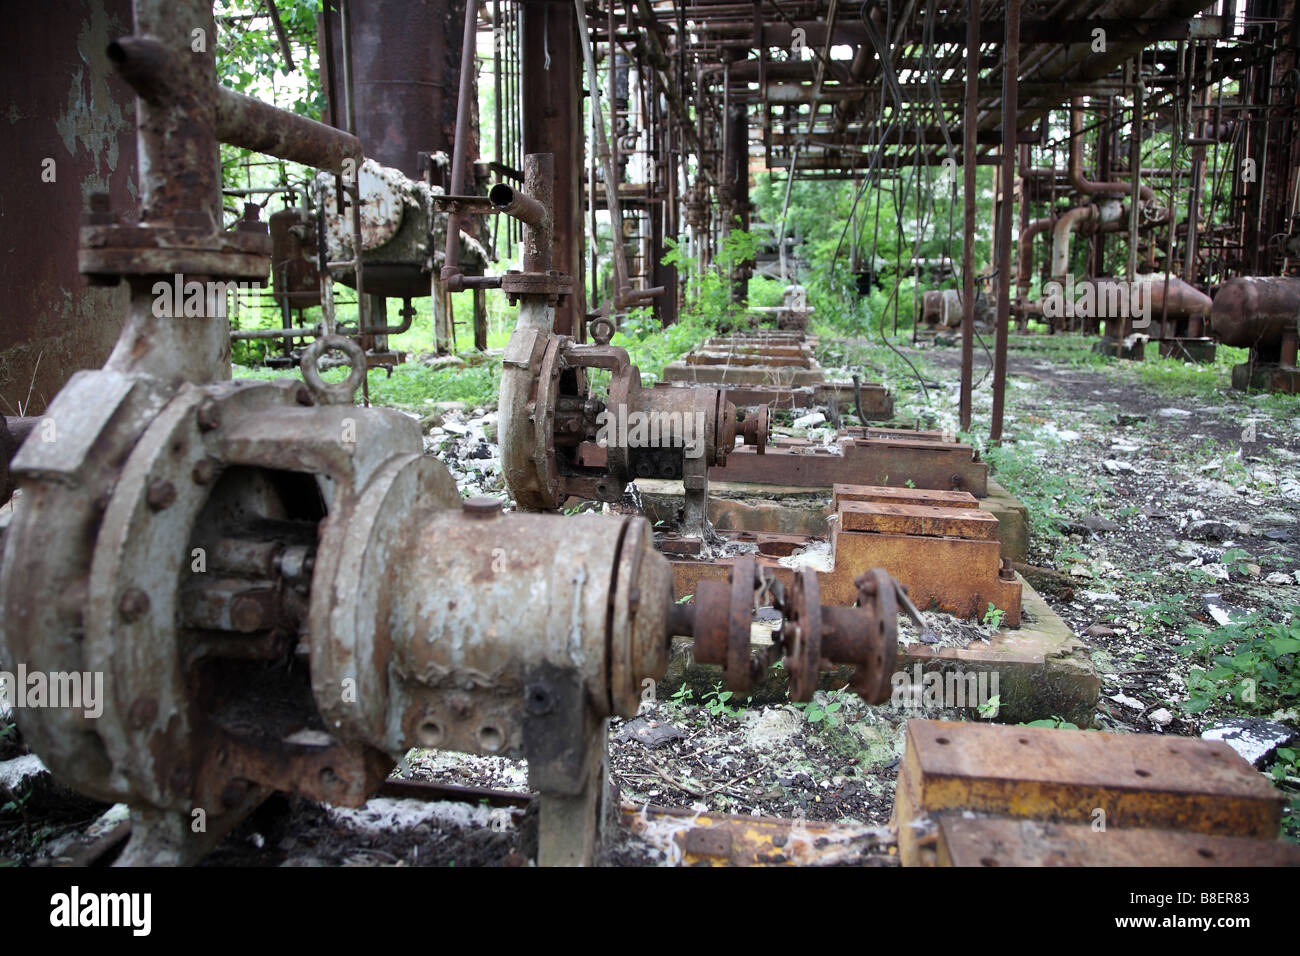 union carbide Bhopal disaster: bhopal disaster, chemical leak in 1984 in the city of bhopal, madhya pradesh state, india at the time, it was called the worst industrial accident.